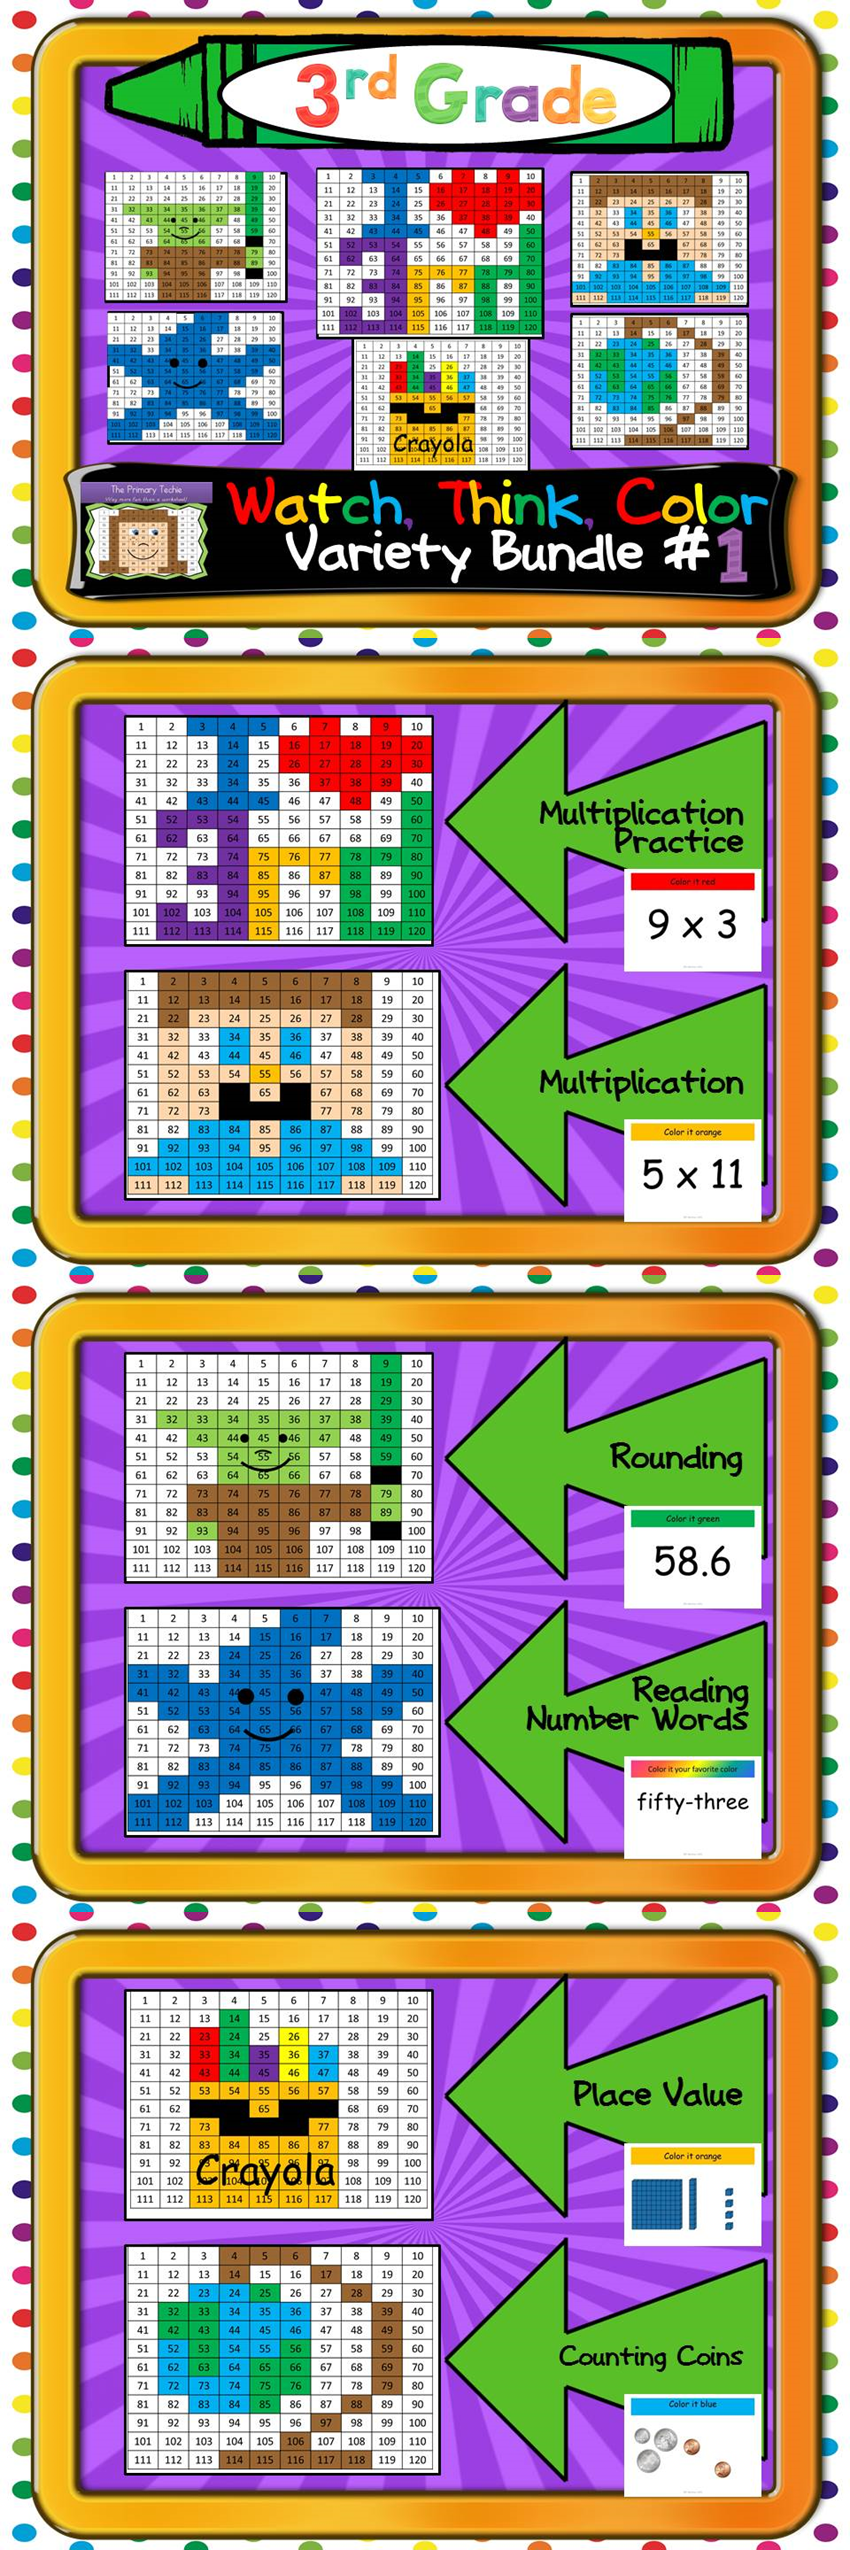 Watch, Think, Color games designed just for third graders!  Multiplication practice, reading number words, rounding, counting coins, and place value!  Each game keeps kids focused and engaged for 15-20 minutes.  $